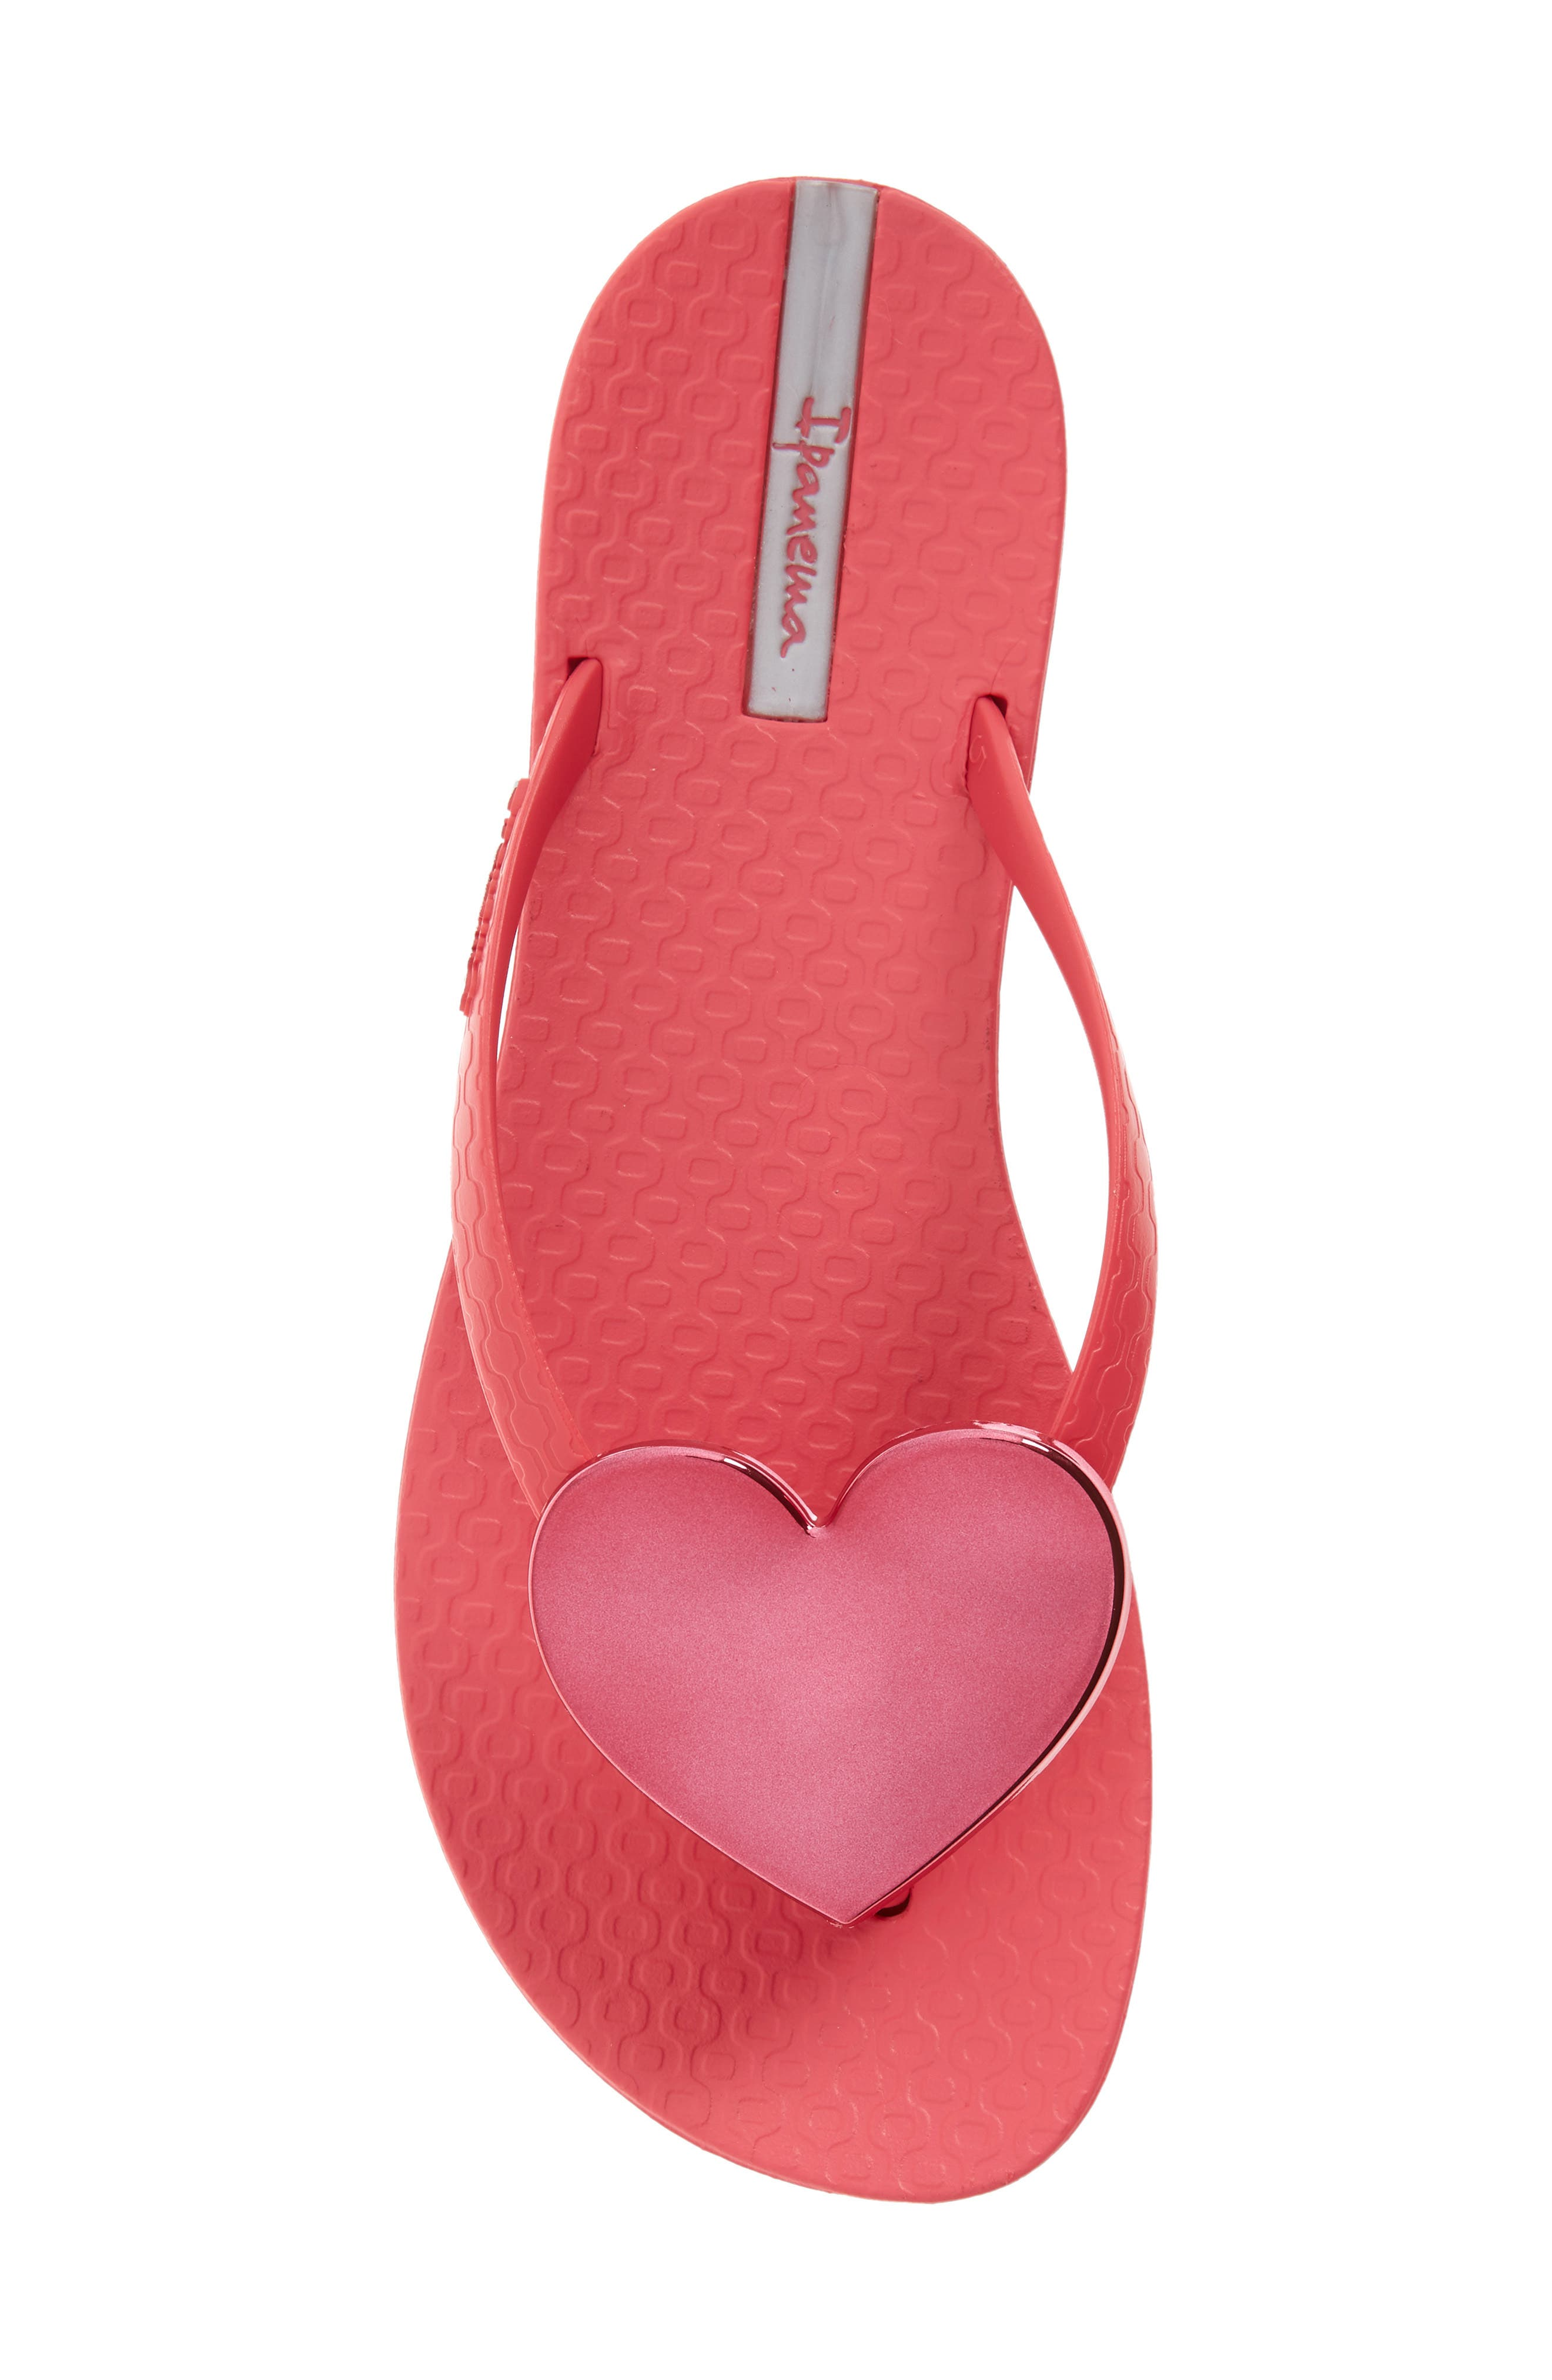 IPANEMA, Wave Heart Flip Flop, Alternate thumbnail 5, color, PINK/ RED